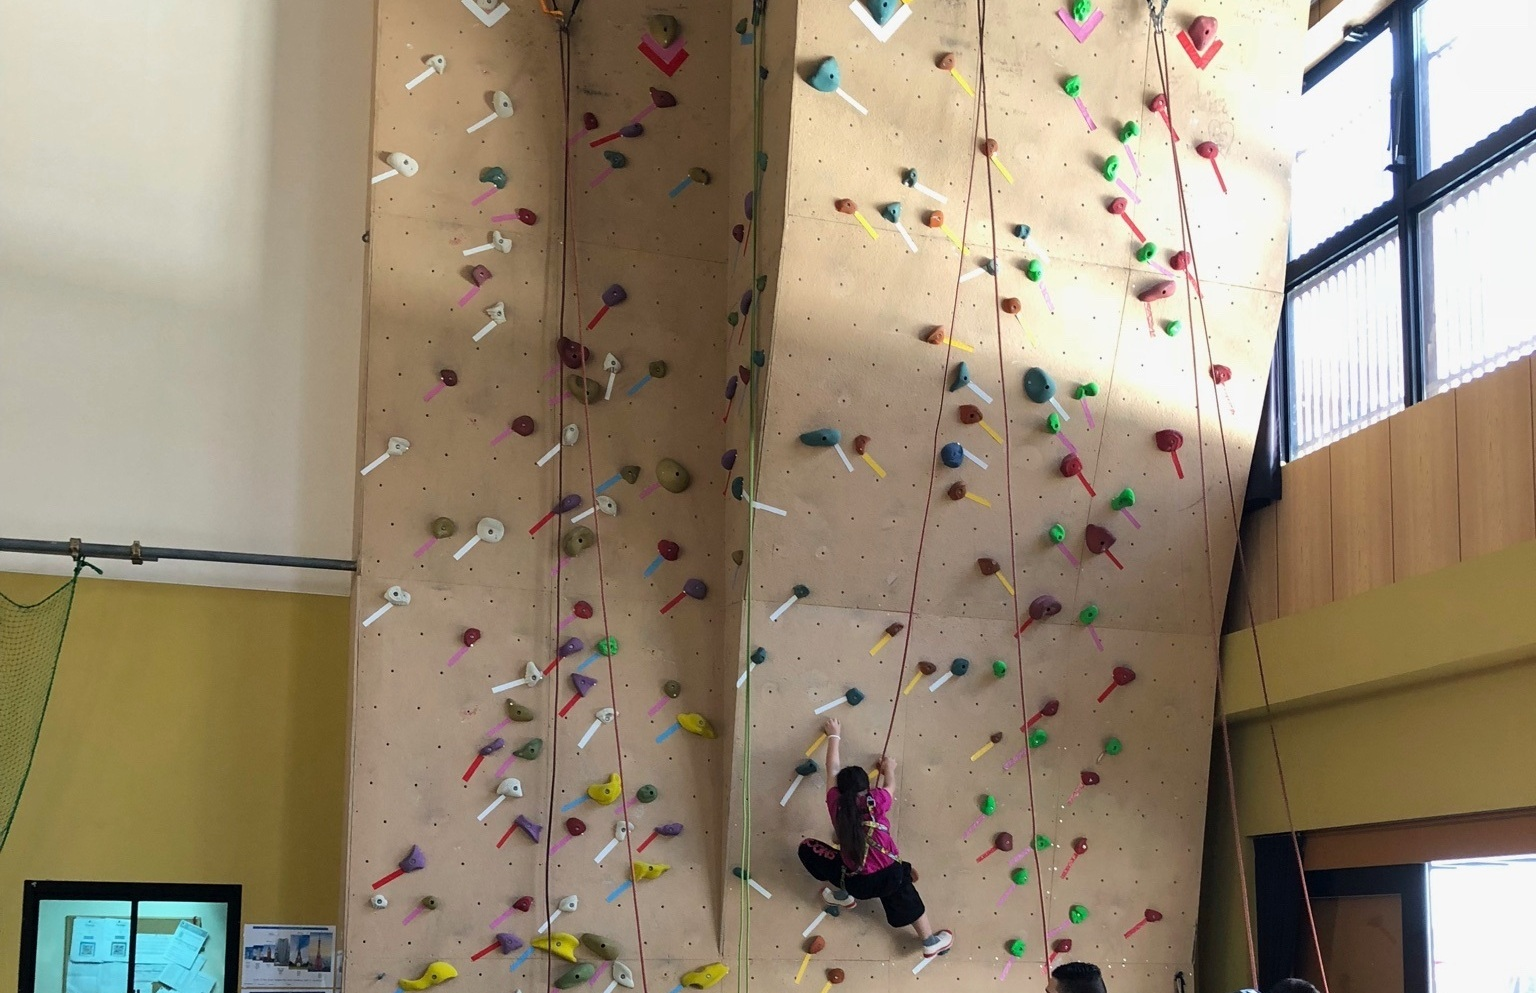 Rock Climbing - Come try our rock wall and see how high you can climb.